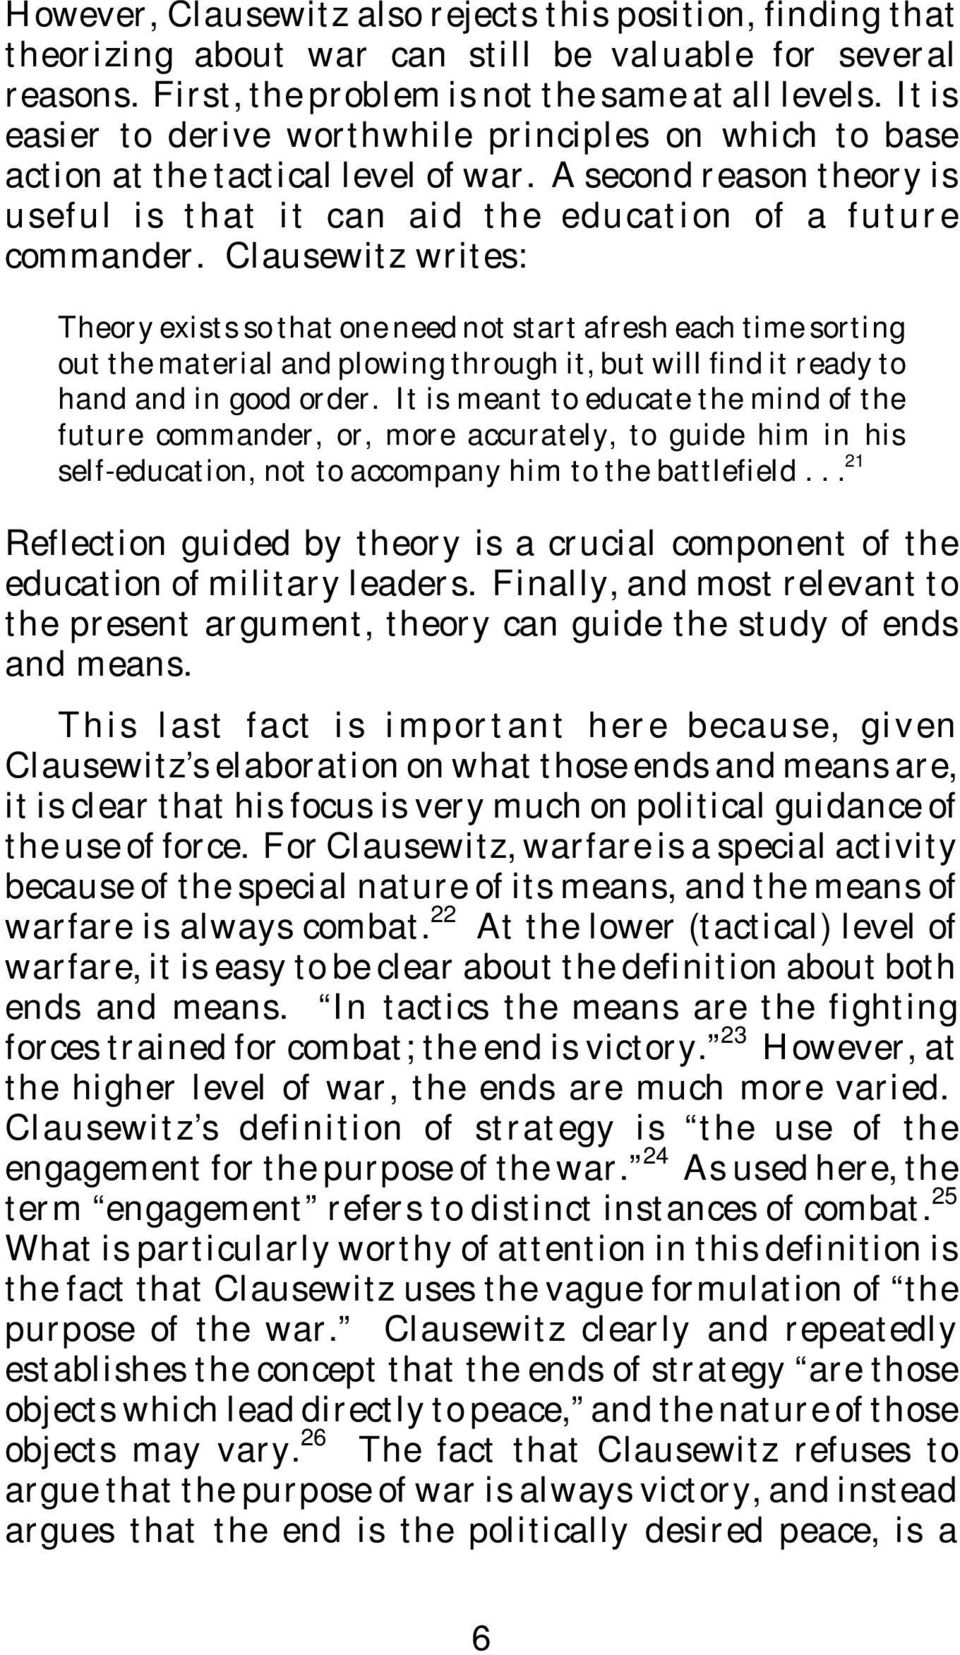 Clausewitz writes: Theory exists so that one need not start afresh each time sorting out the material and plowing through it, but will find it ready to hand and in good order.